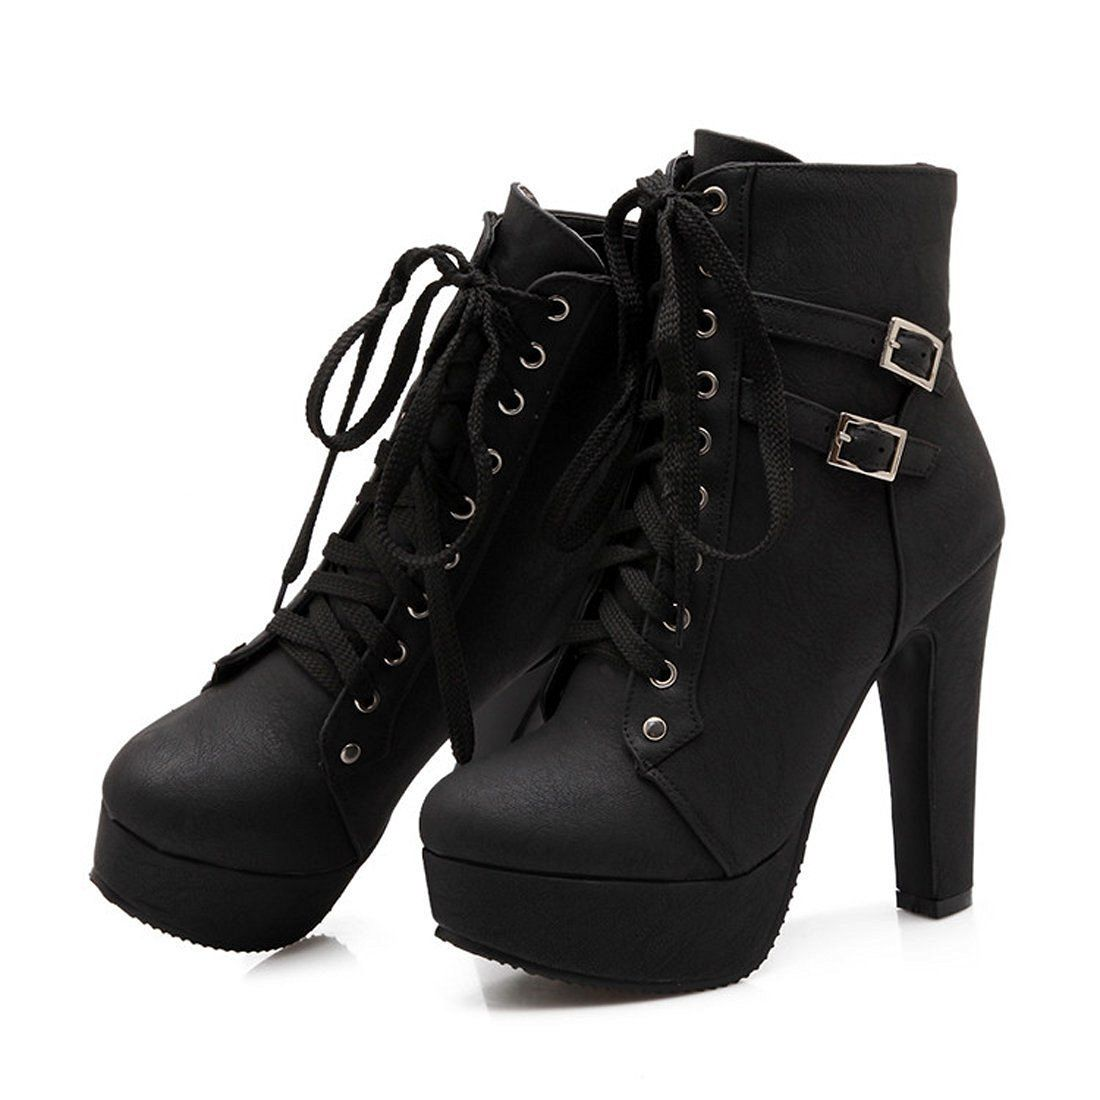 Women's Stylish Buckled Straps Lace up Round Toe Block High Heel Platform Short Boots